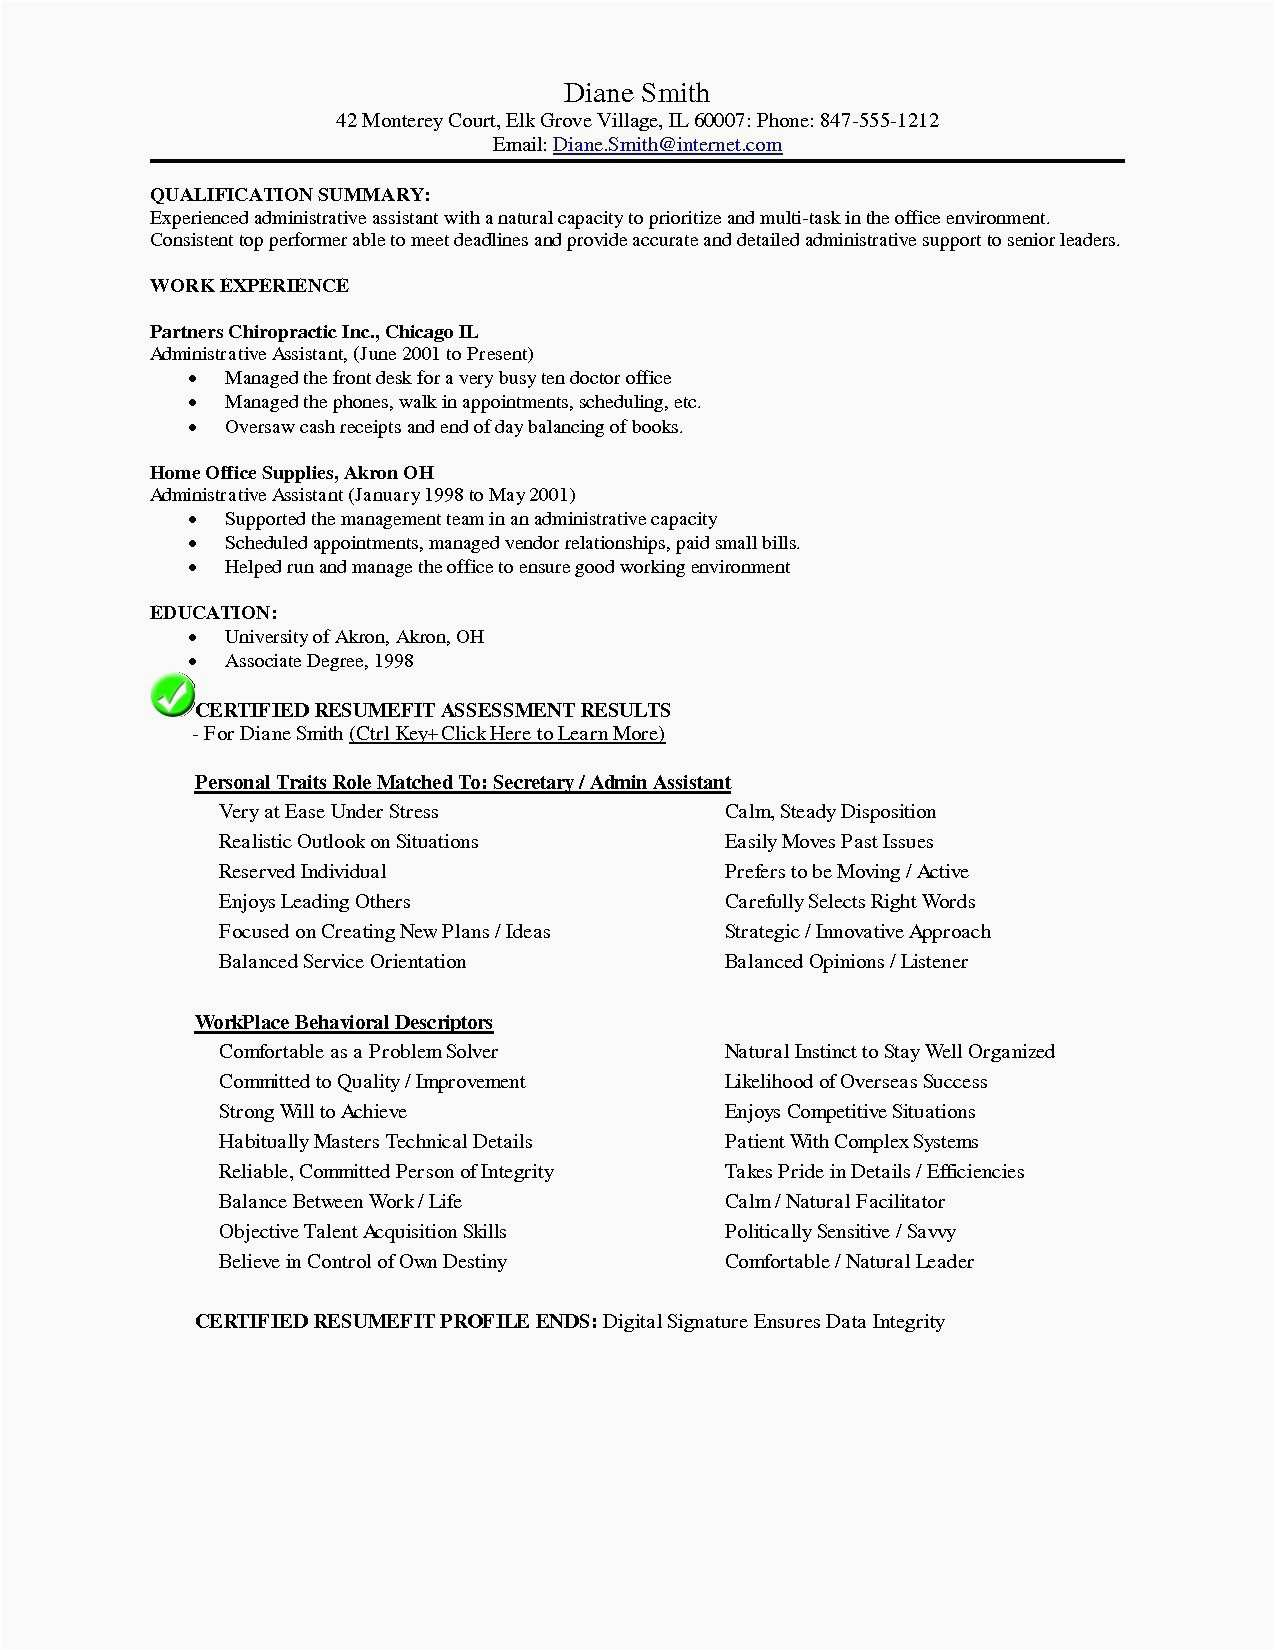 Resume Writers Chicago - 26 Best Resume with Certifications Sample Free